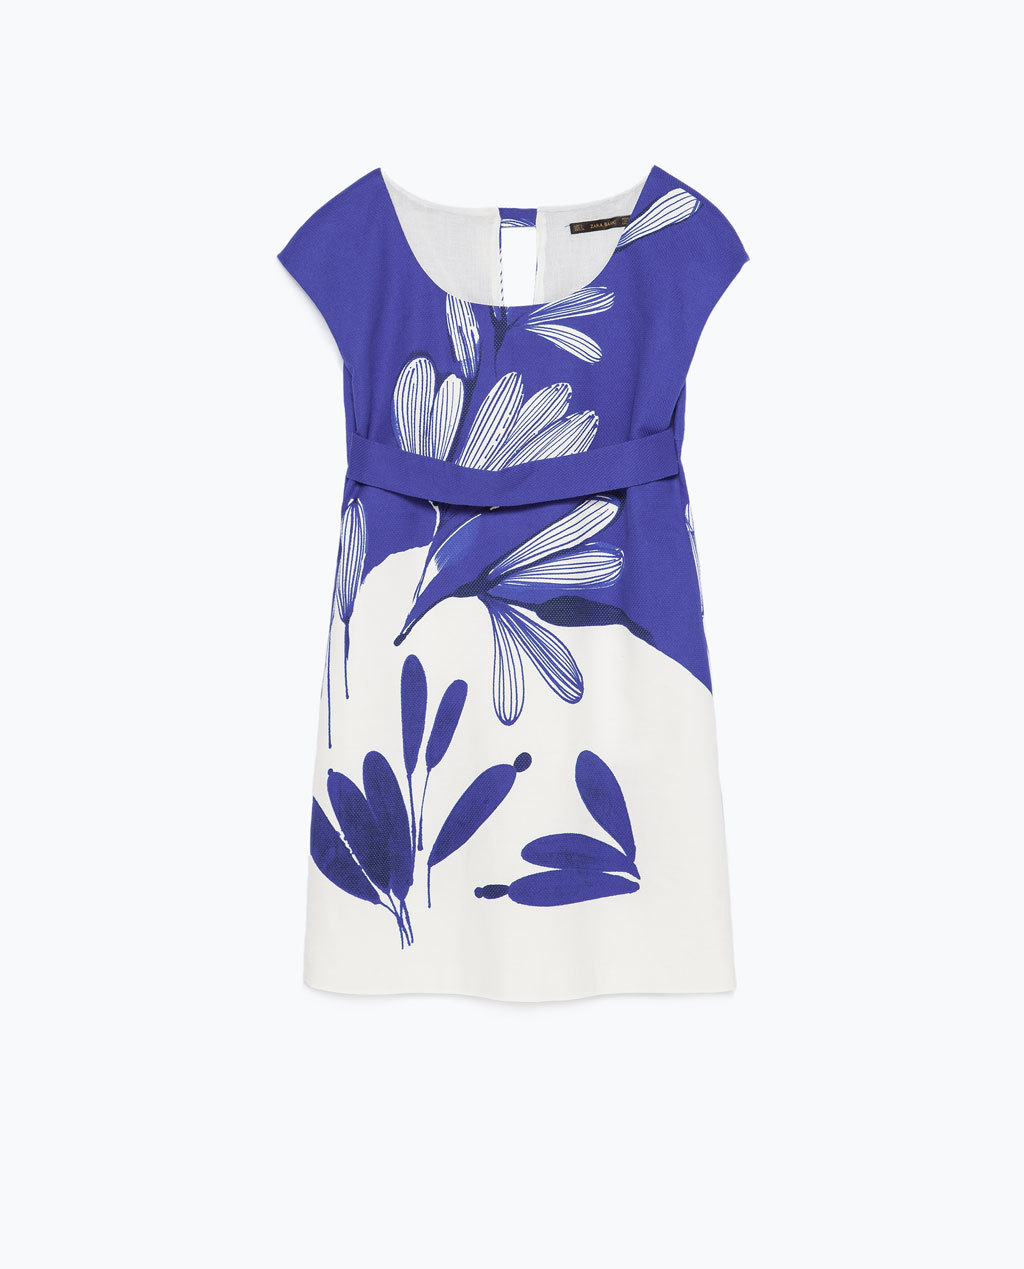 Printed Dress - style: shift; length: mid thigh; neckline: round neck; sleeve style: capped; fit: tailored/fitted; secondary colour: white; predominant colour: navy; occasions: evening, creative work; fibres: cotton - stretch; sleeve length: sleeveless; pattern type: fabric; pattern: florals; texture group: woven light midweight; season: s/s 2015; multicoloured: multicoloured; wardrobe: highlight